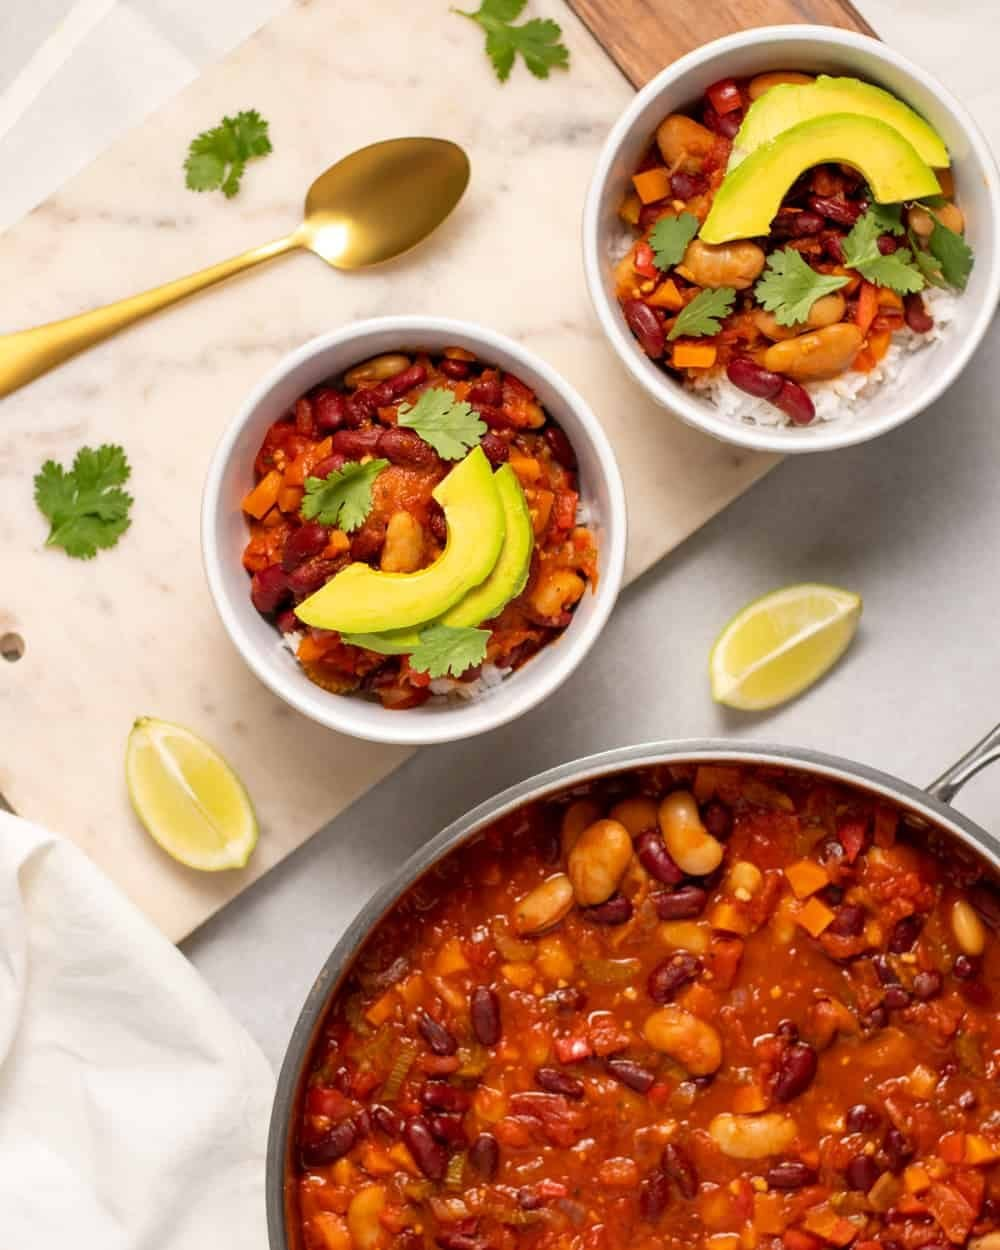 When you're craving your favourite hearty foods, what better to make than our easy vegan chili recipe? It's quick to prepare and packed full of fresh vegetables and spices.